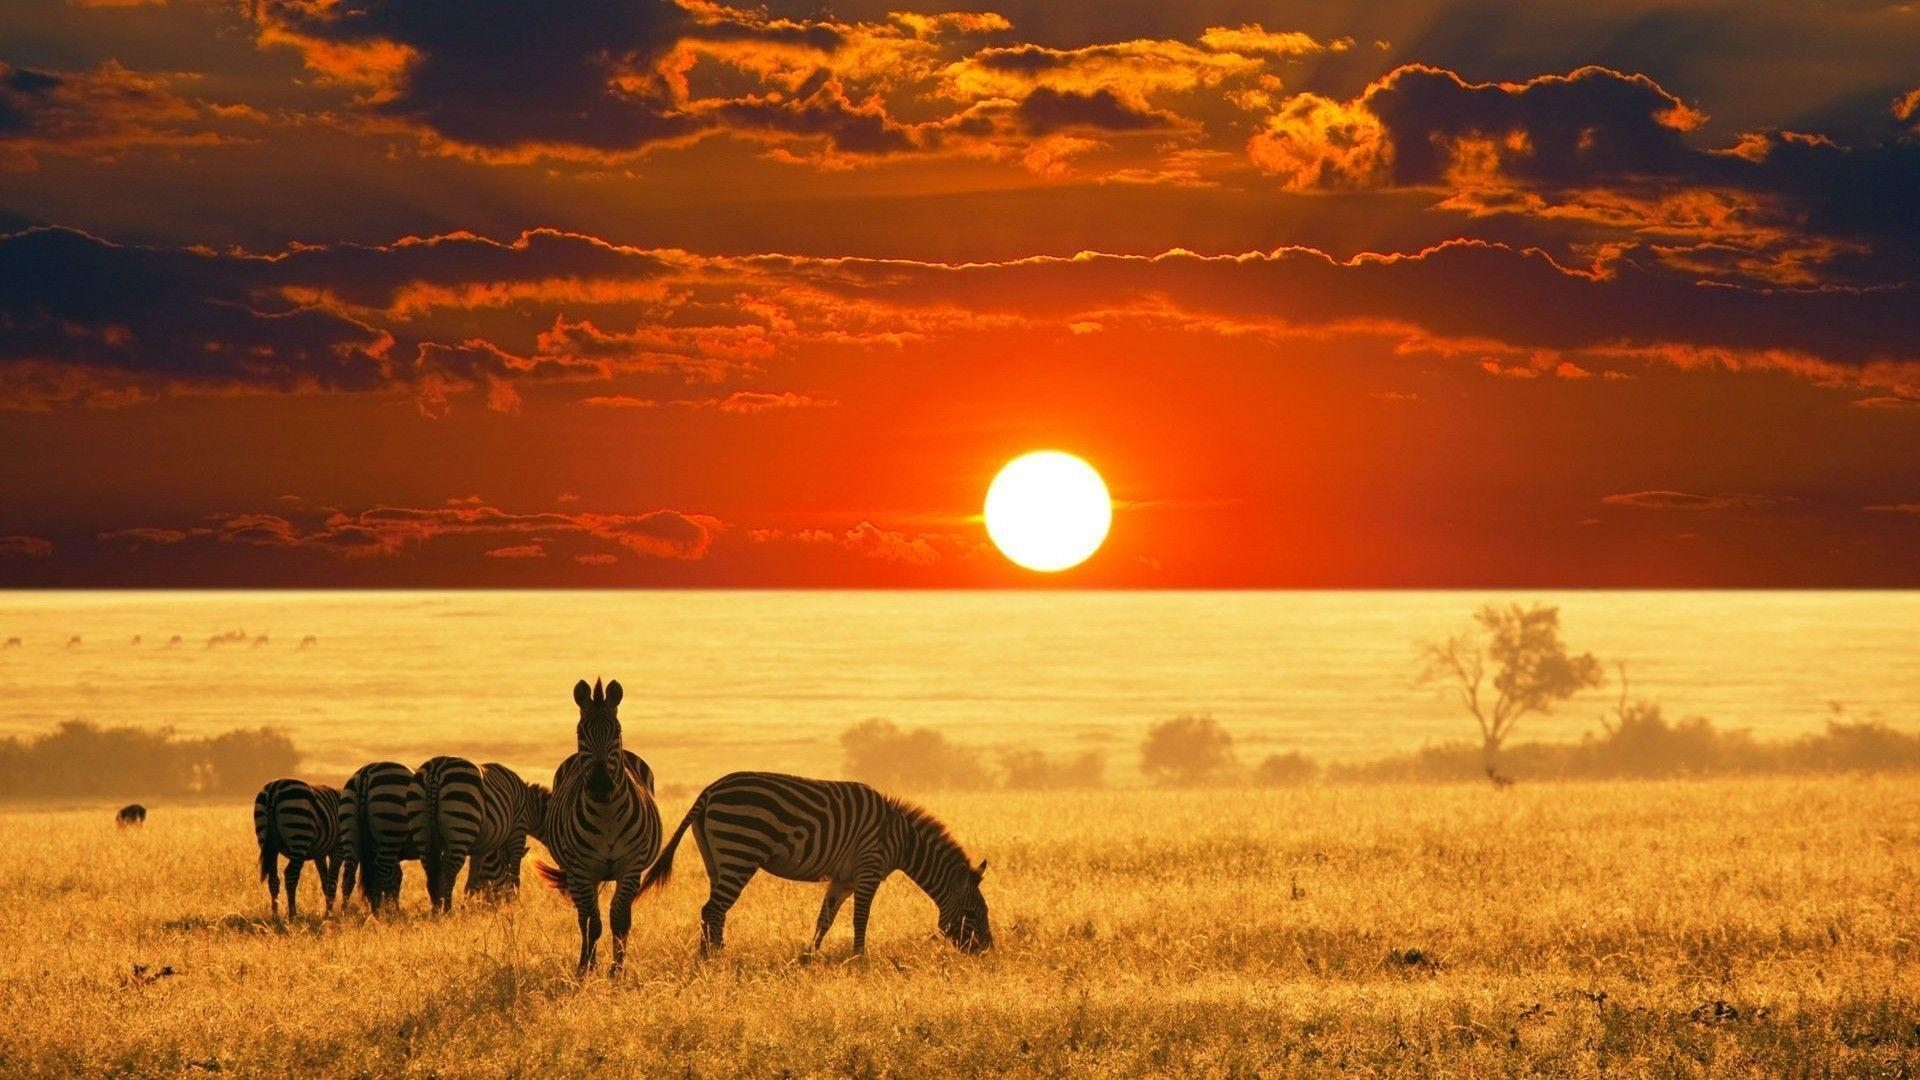 Wild Animals Safari Backgrounds Wallpapers